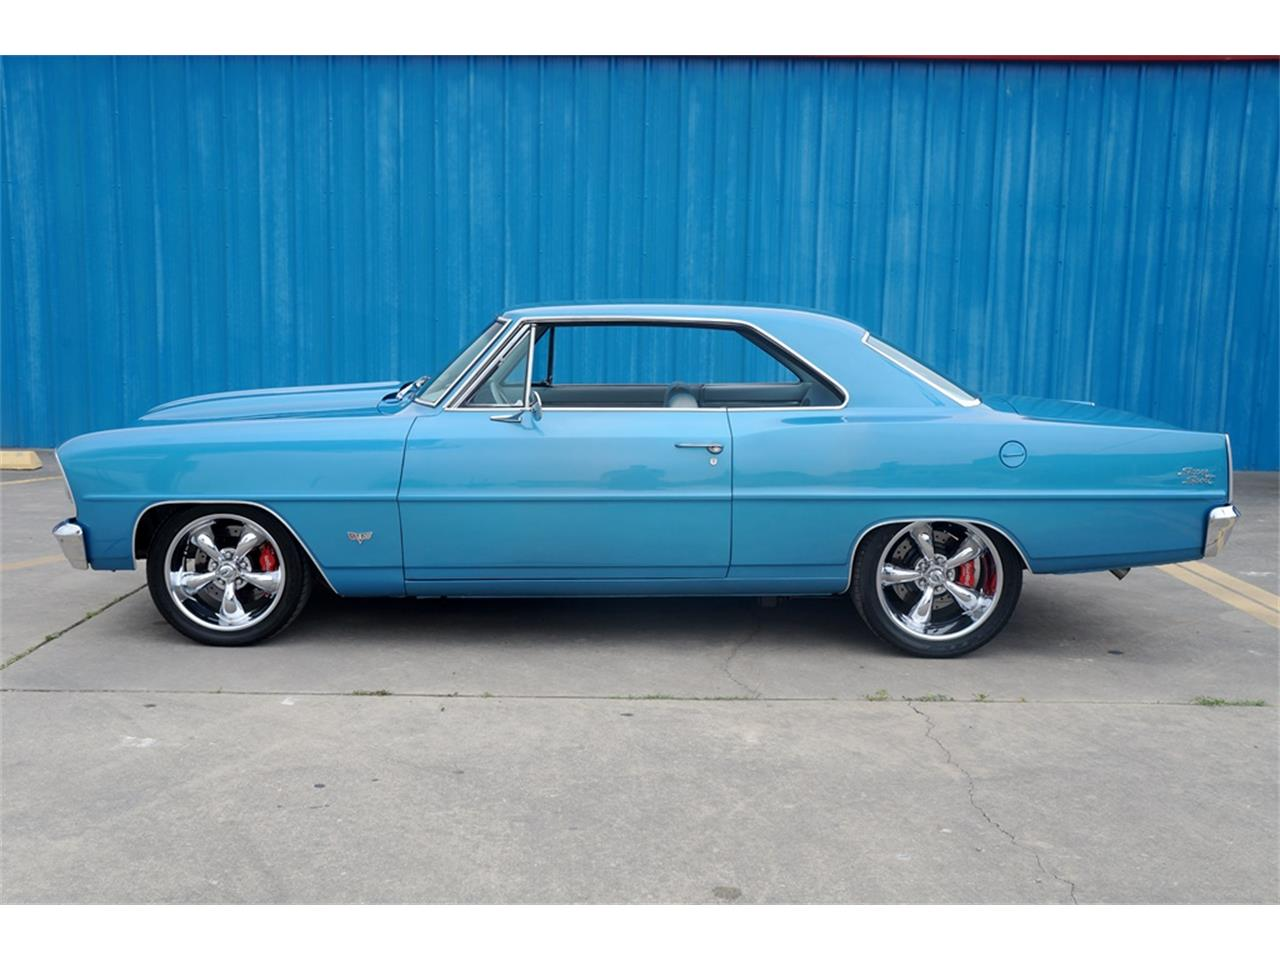 Large Picture of Classic 1966 Nova located in New Braunfels Texas - $64,900.00 - PWOL